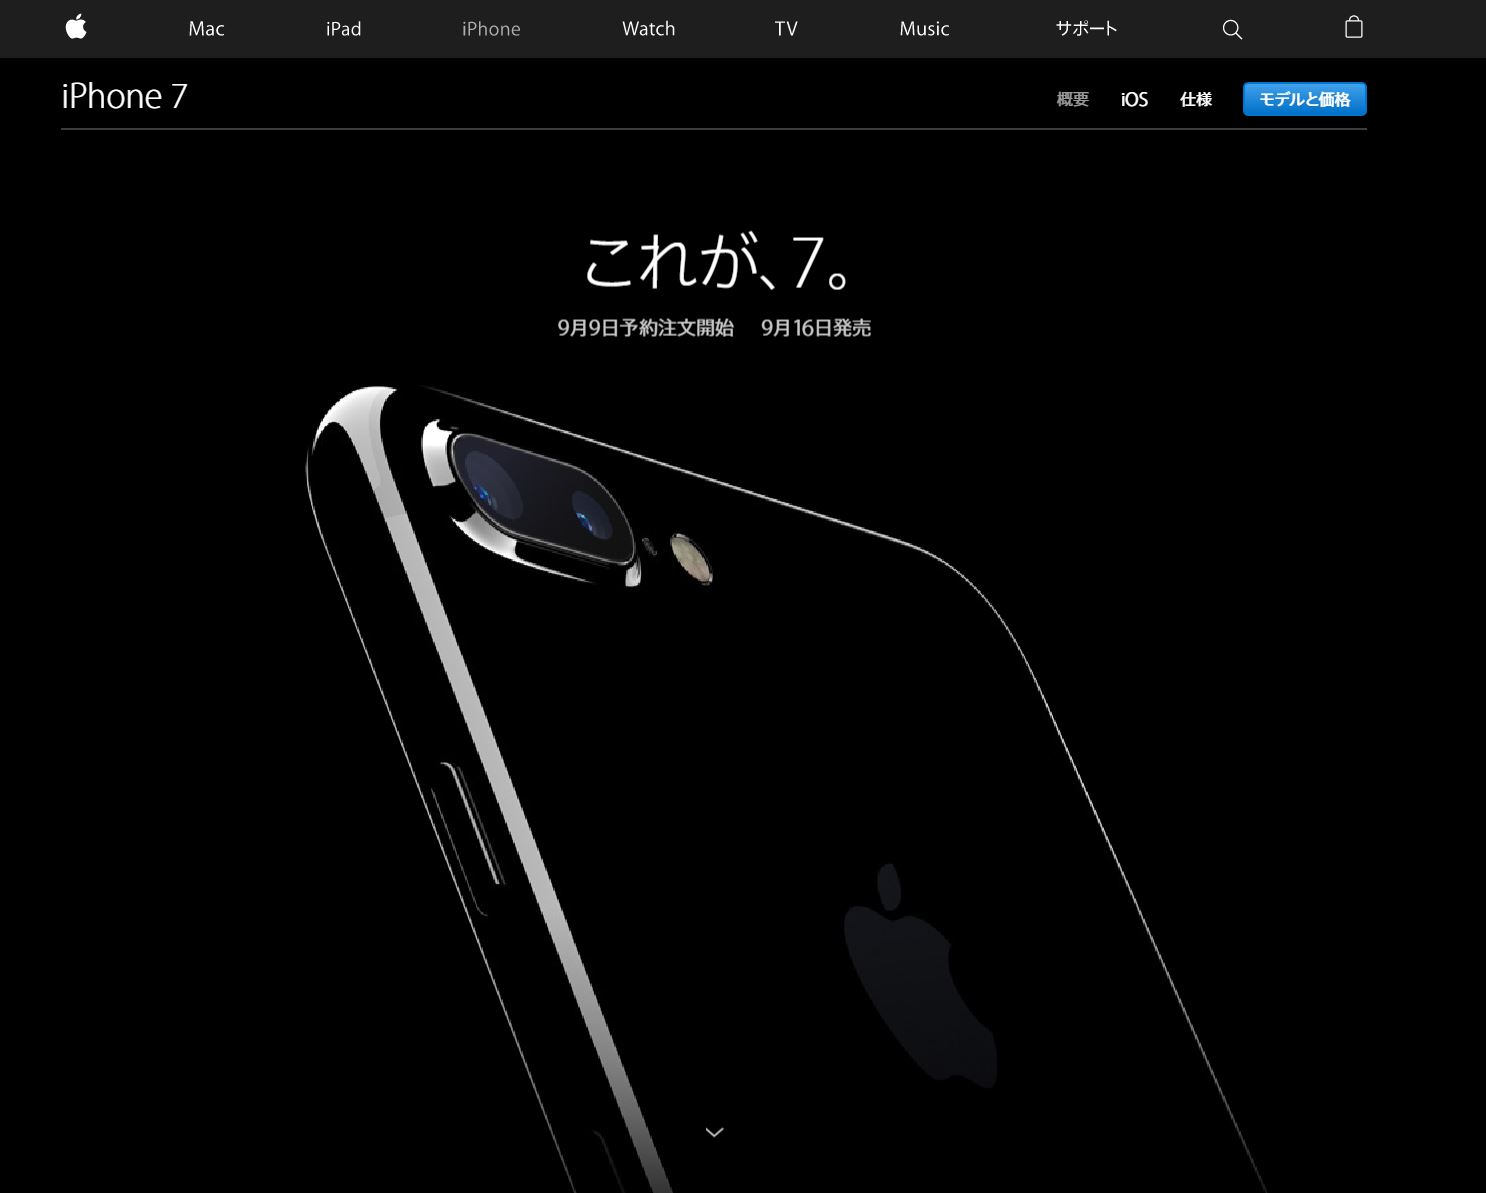 Apple Pay on iphone7 can be used for payment on Japanese OTA Jalan.net